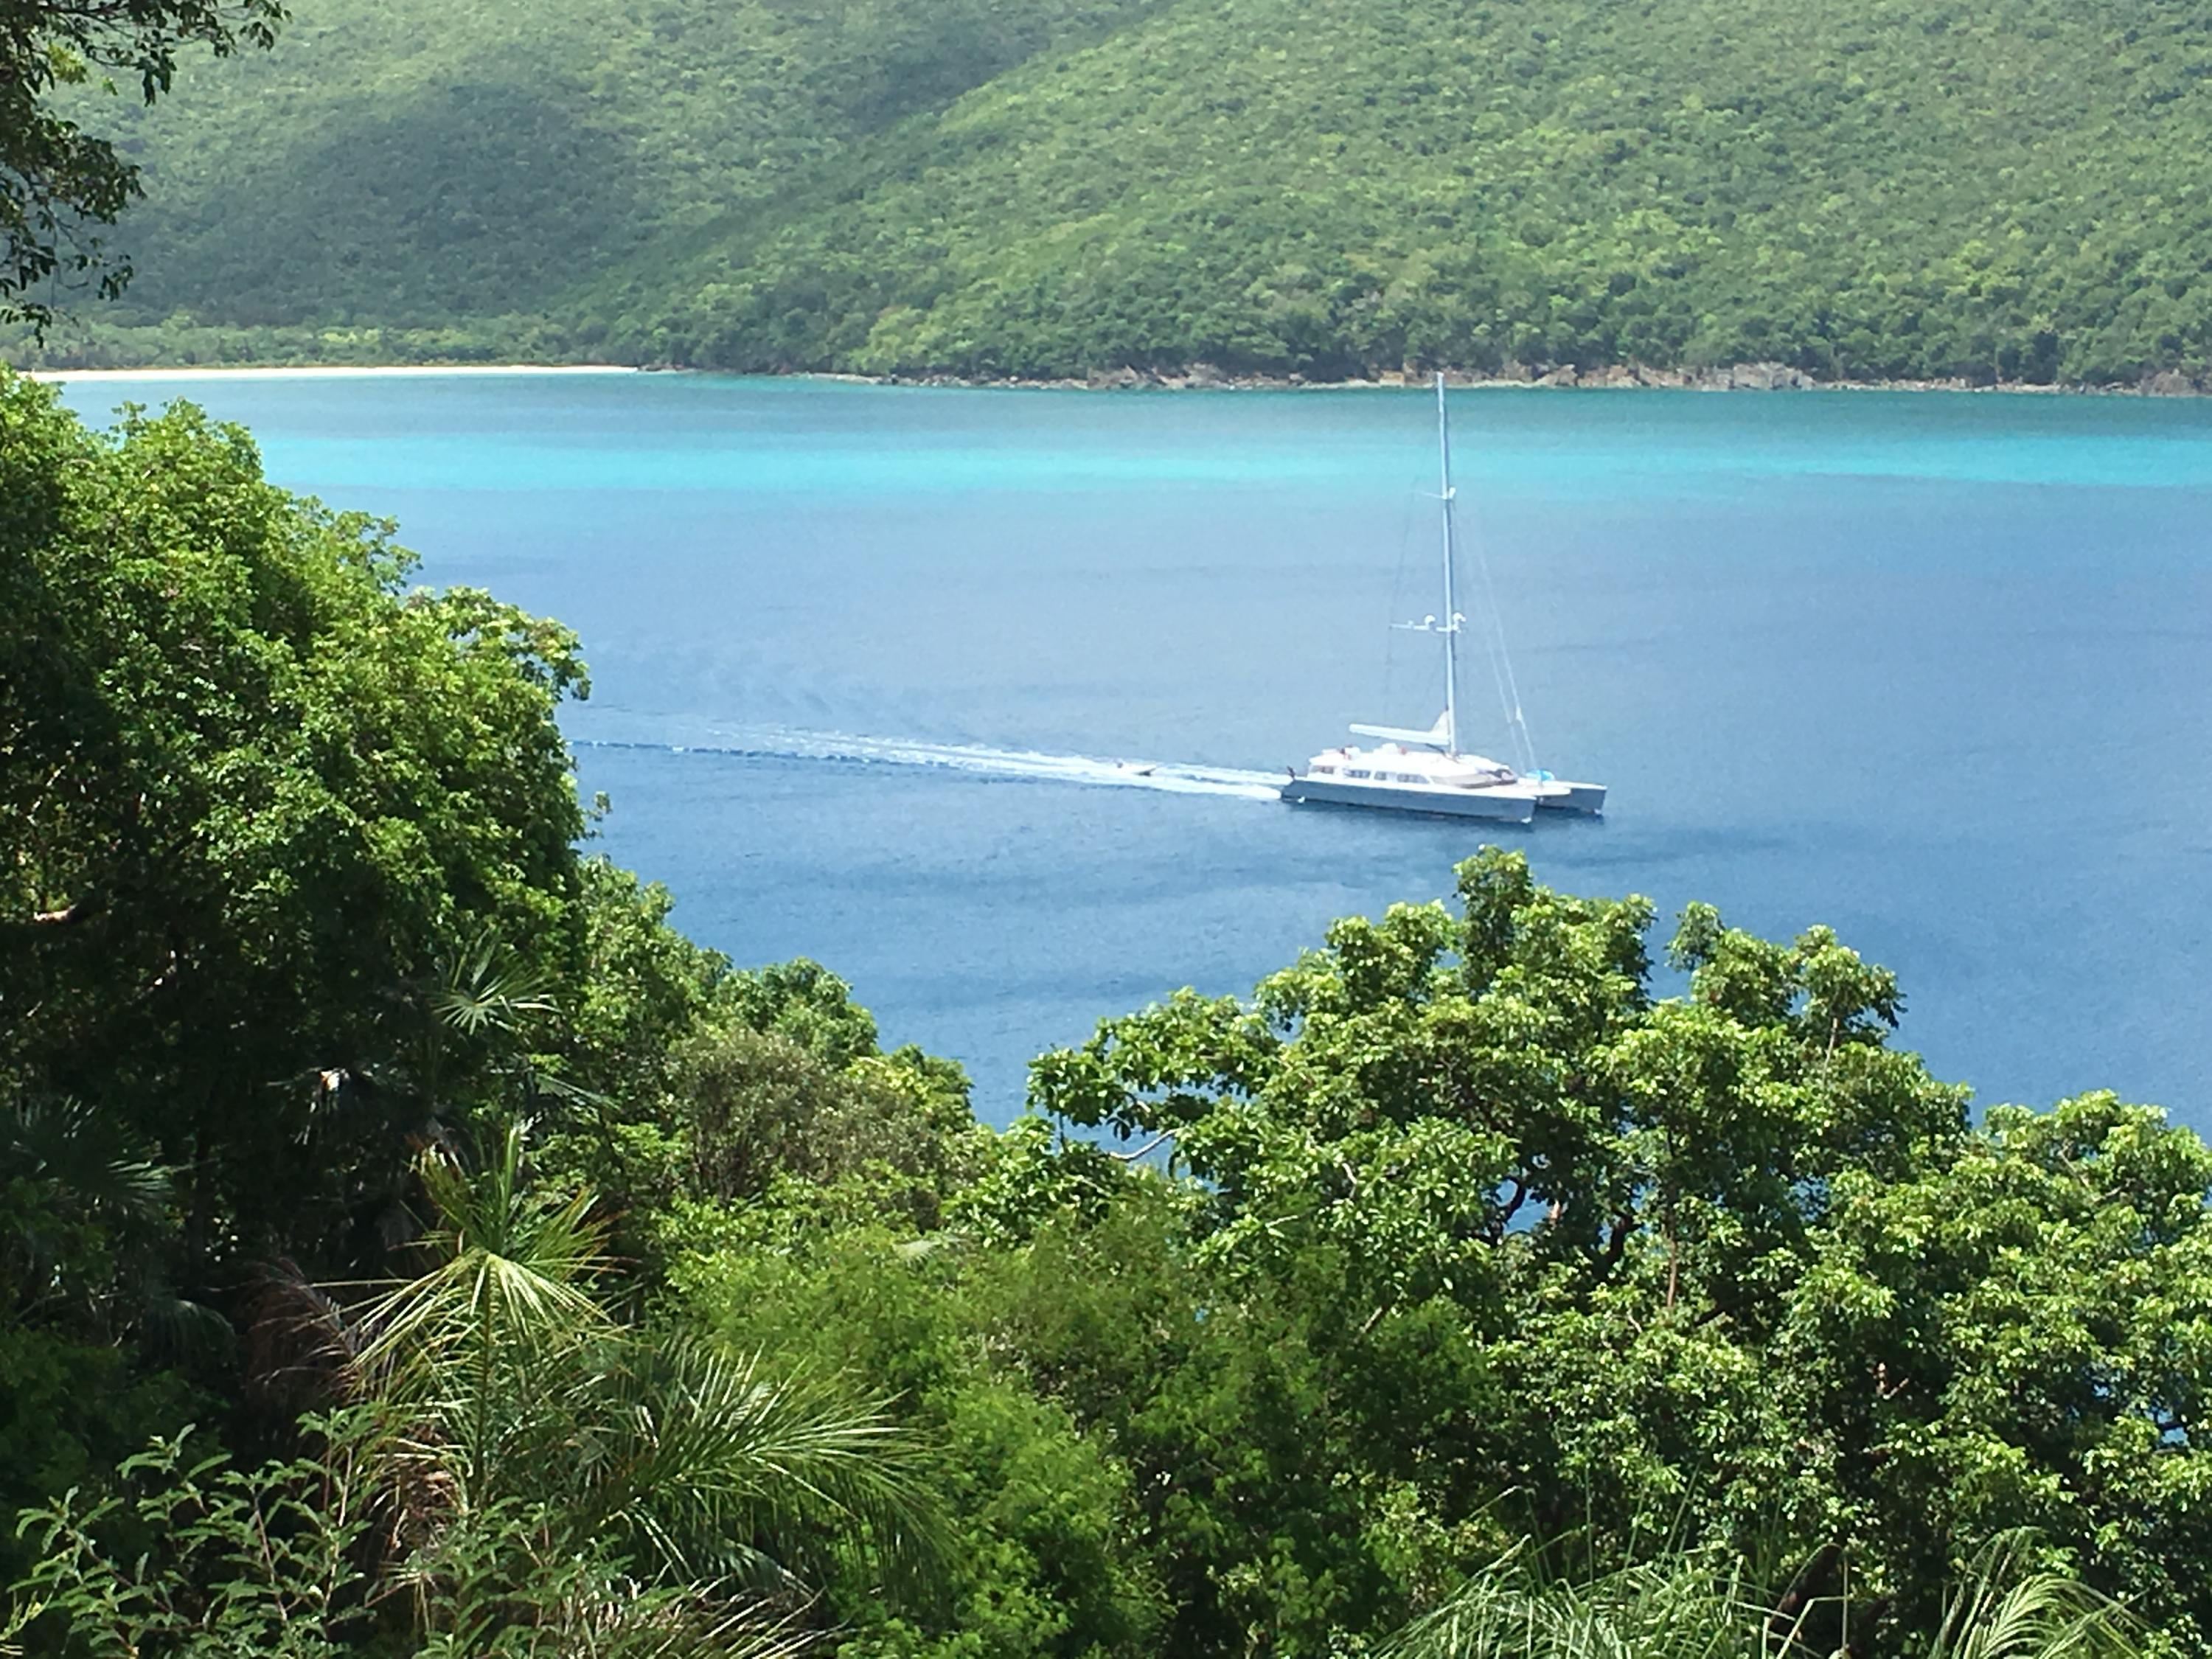 Land for Sale at 10-A-3 Peterborg GNS 10-A-3 Peterborg GNS St Thomas, Virgin Islands 00802 United States Virgin Islands